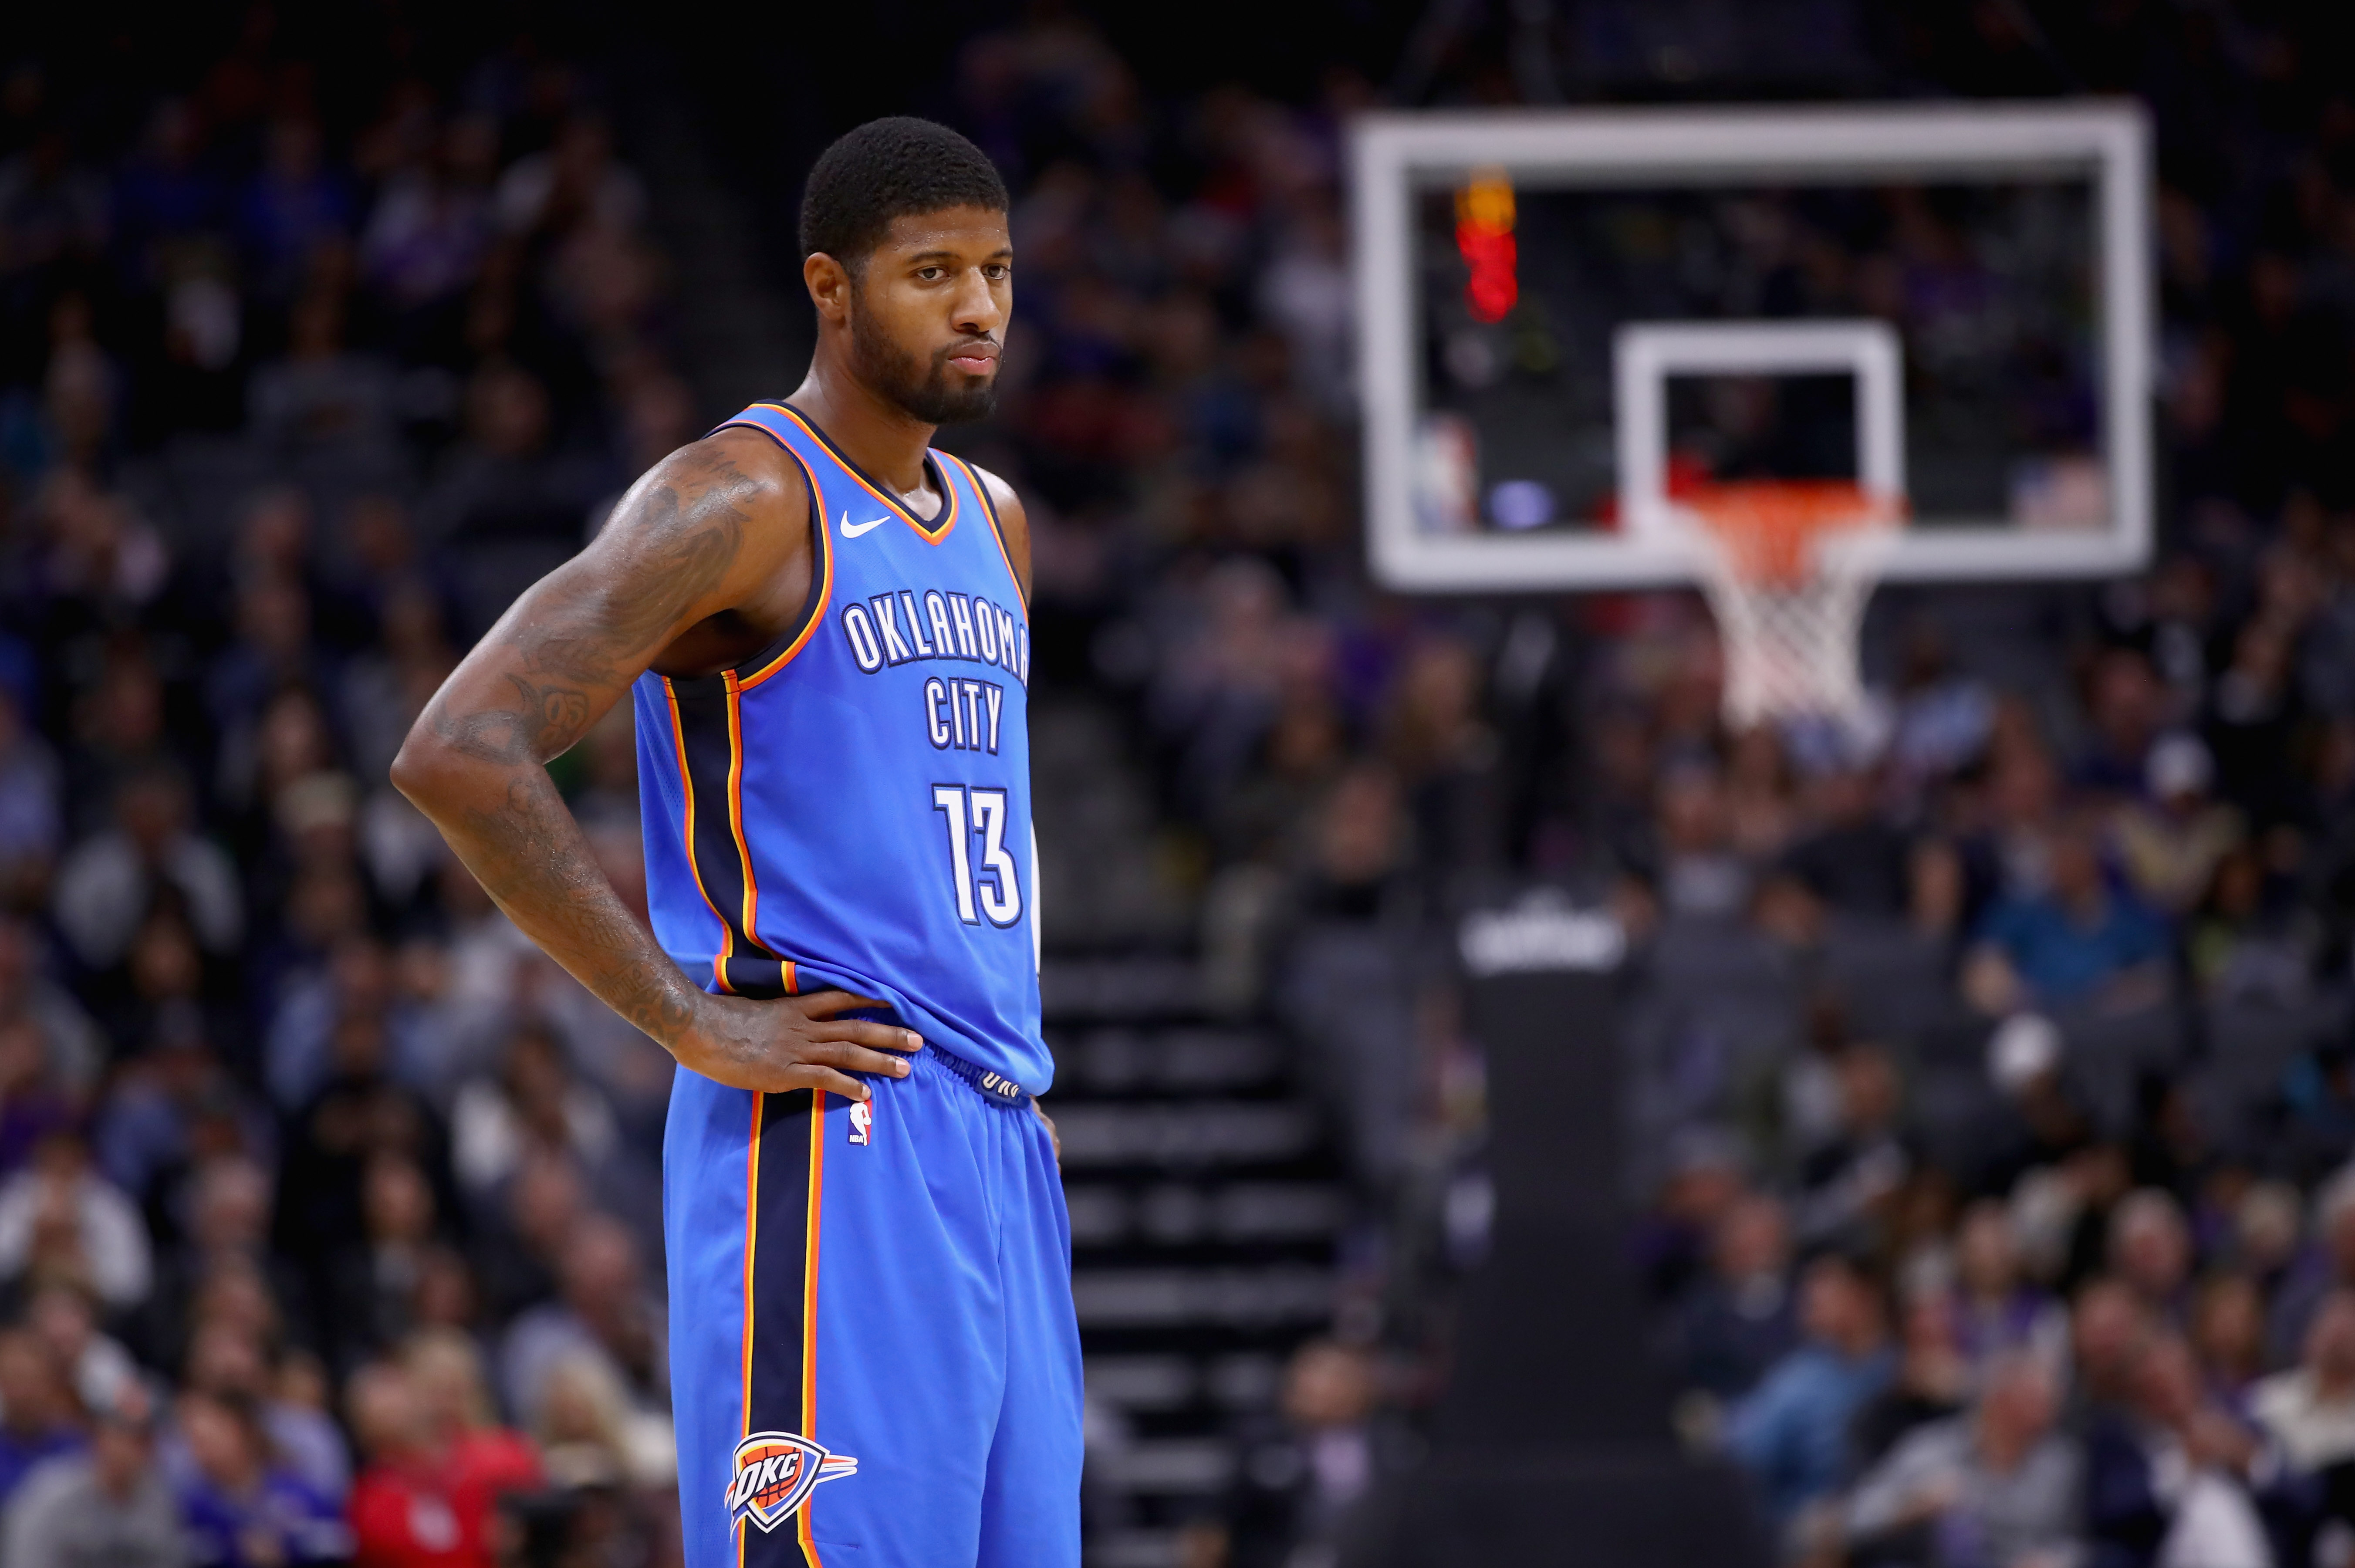 Oklahoma City Thunder vs Indiana Pacers: Lineups, preview & prediction 12/13/17